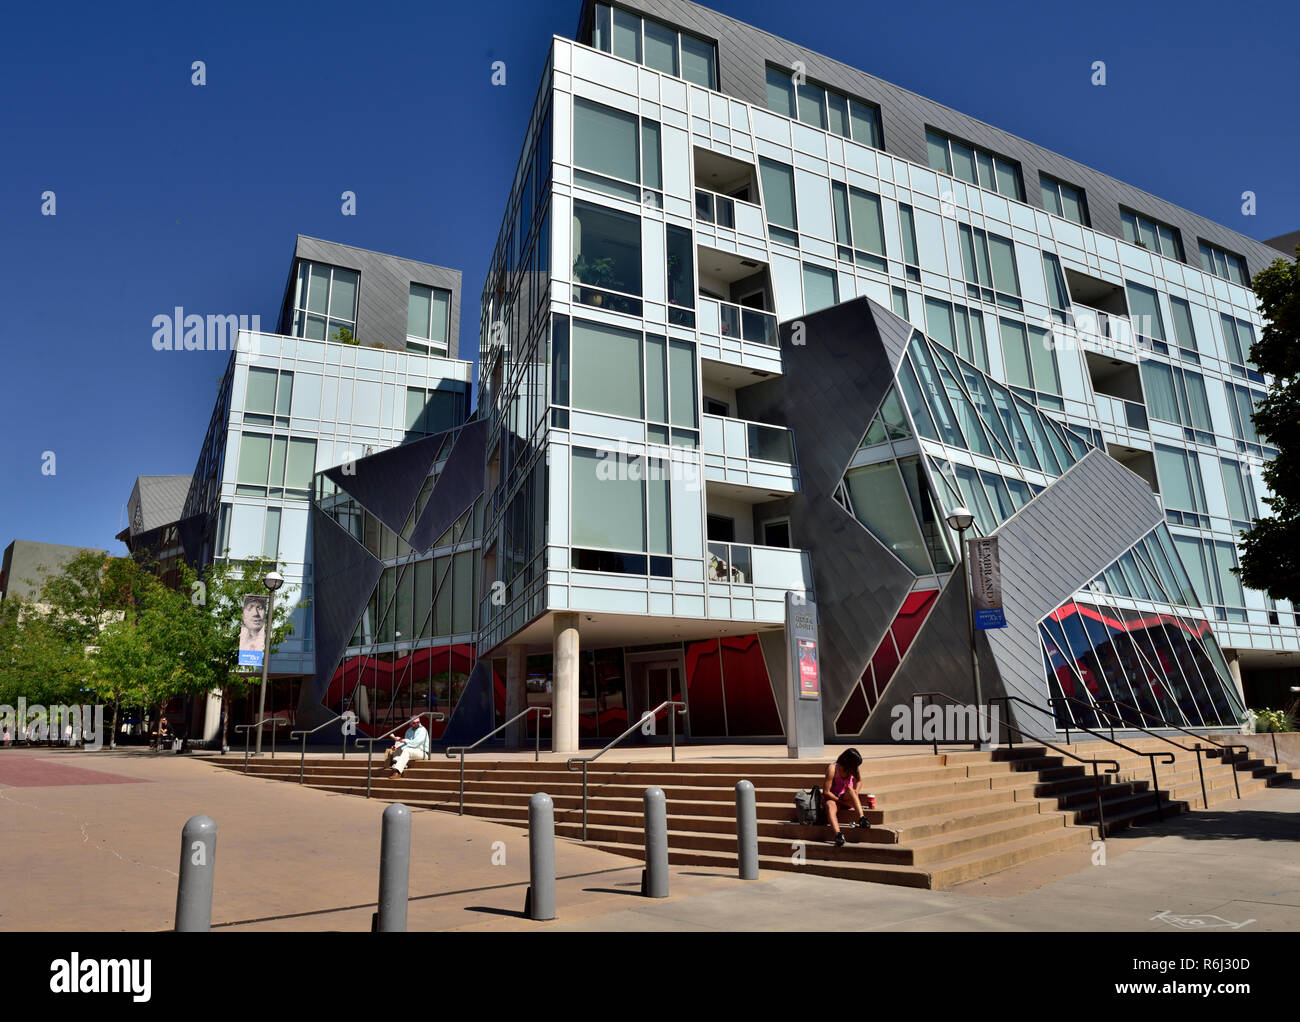 Downtown Denver Civic Center, Modern Condo, apartments, with mix of rental and owner occupier units next to Denver Art Museum - Stock Image